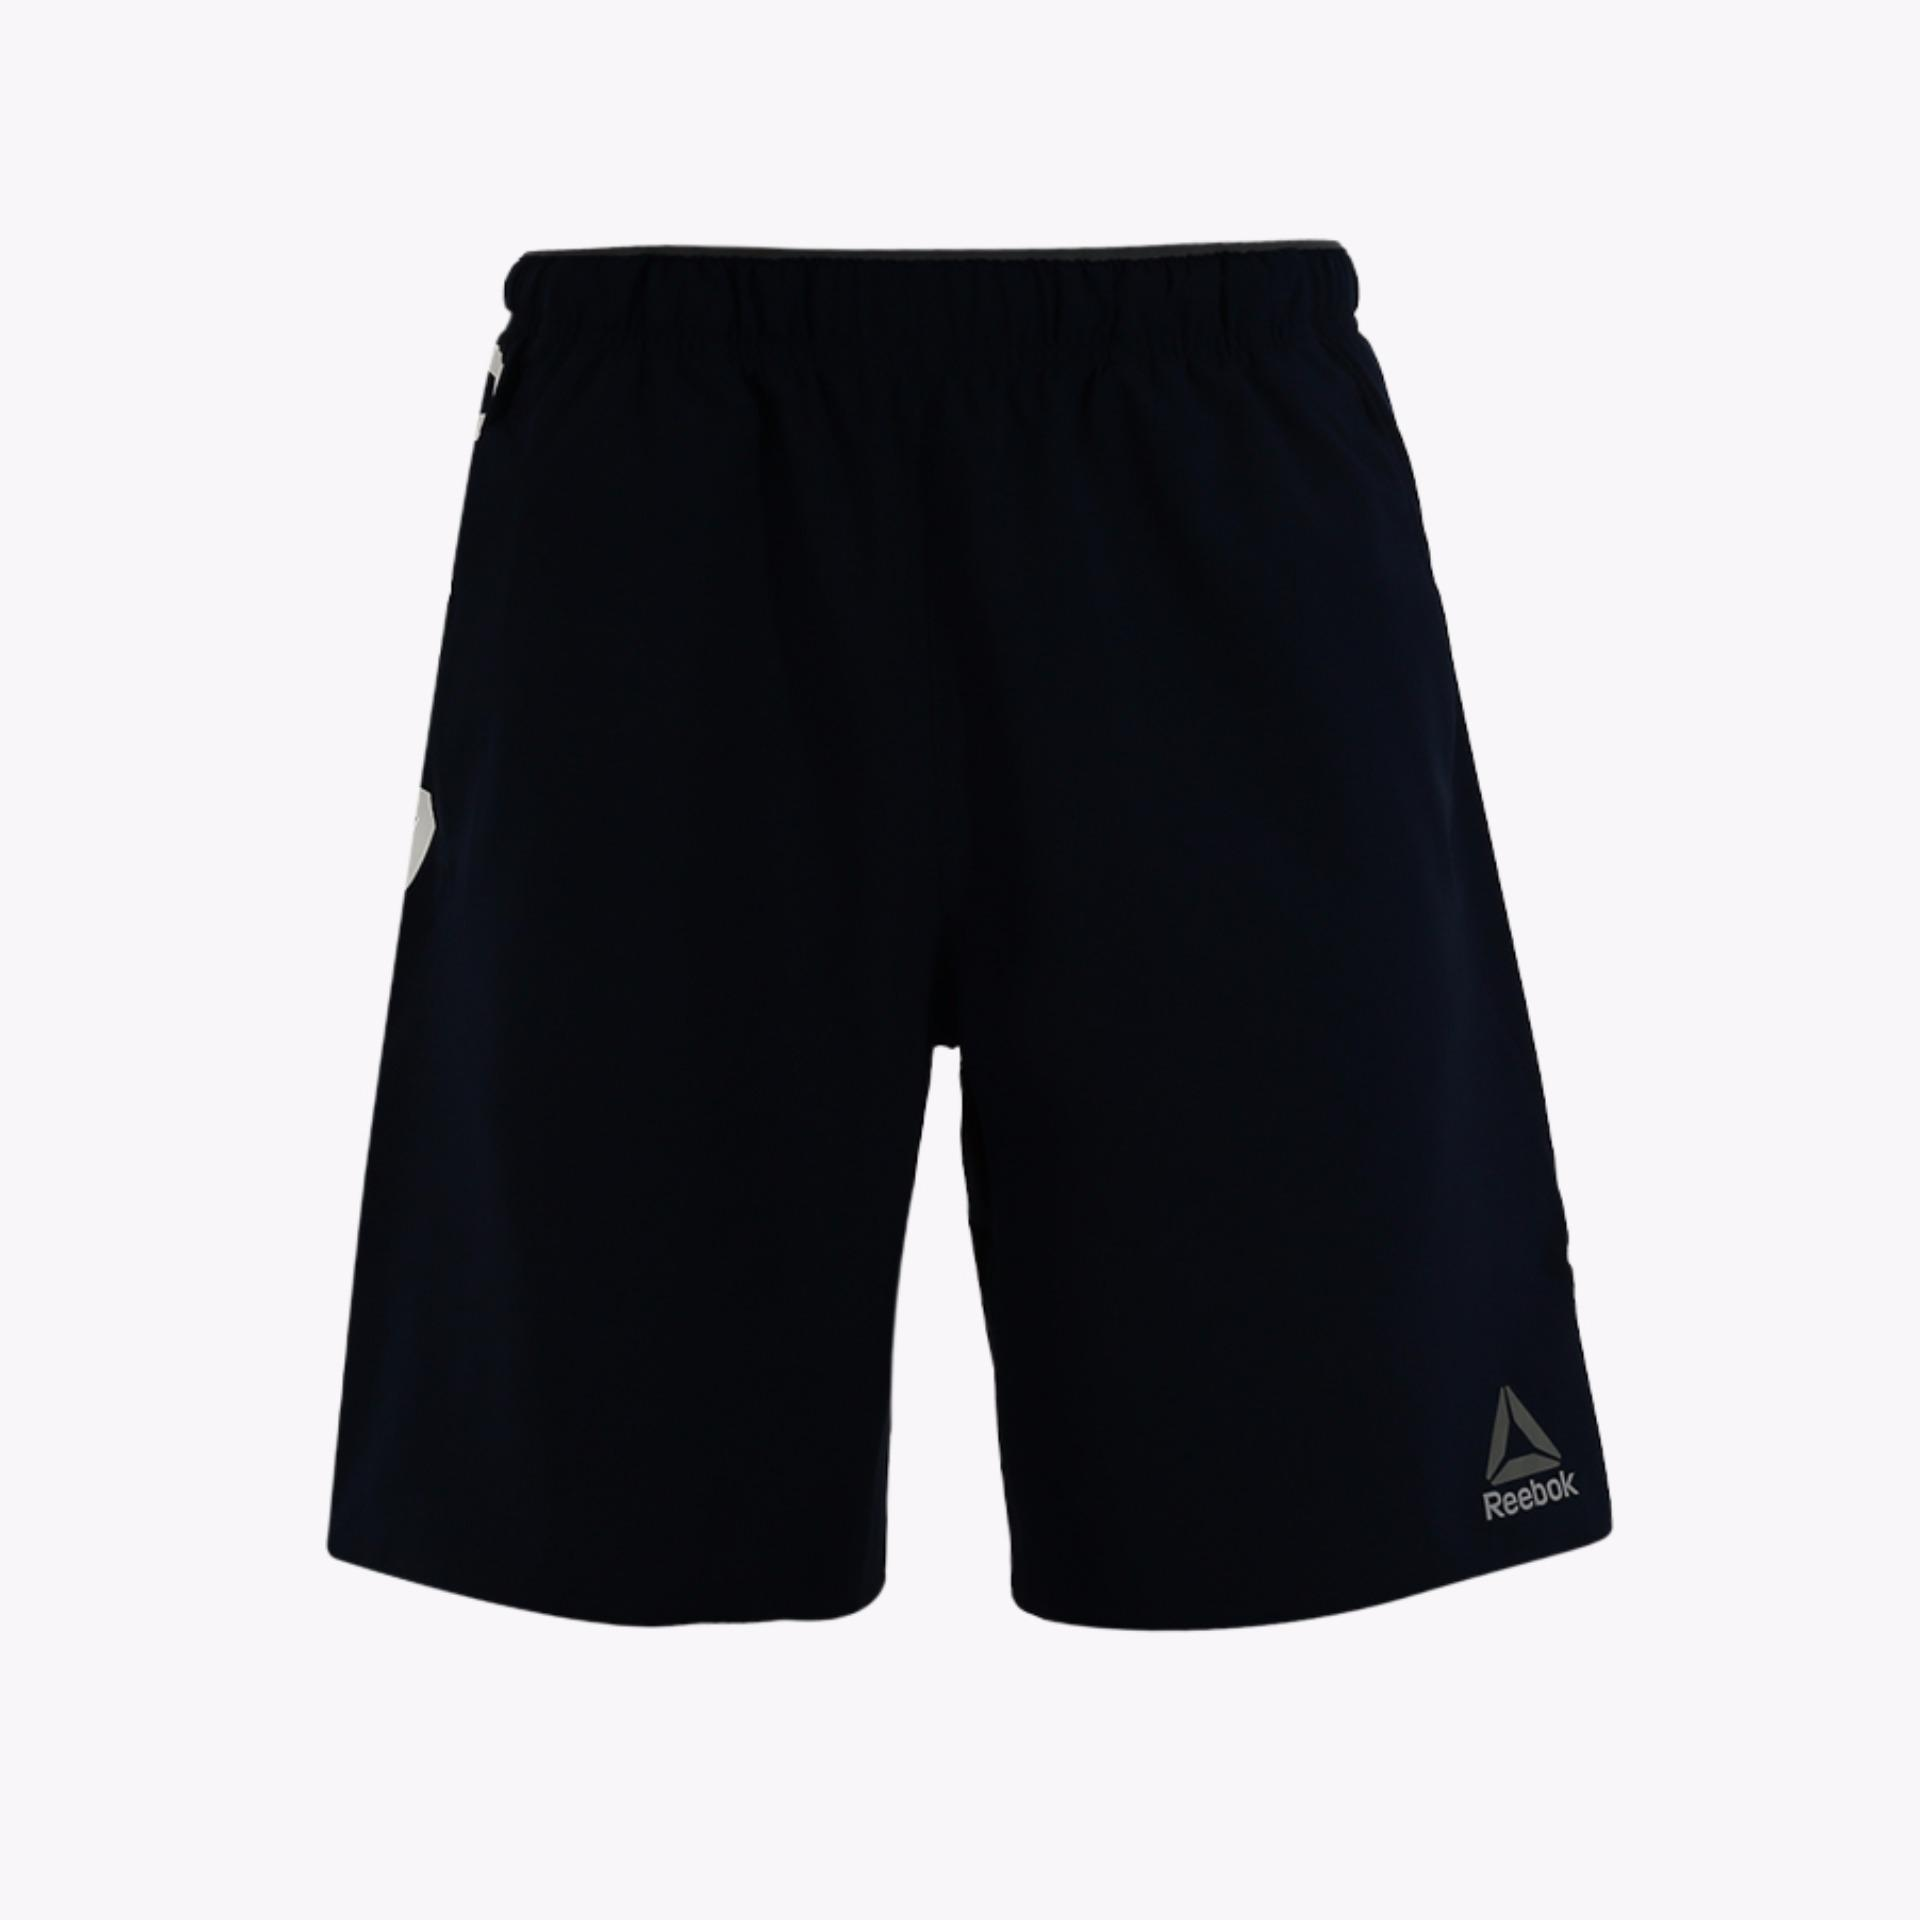 Review Terbaik Reebok Workout Ready Woven Graphic Men S Shorts Navy